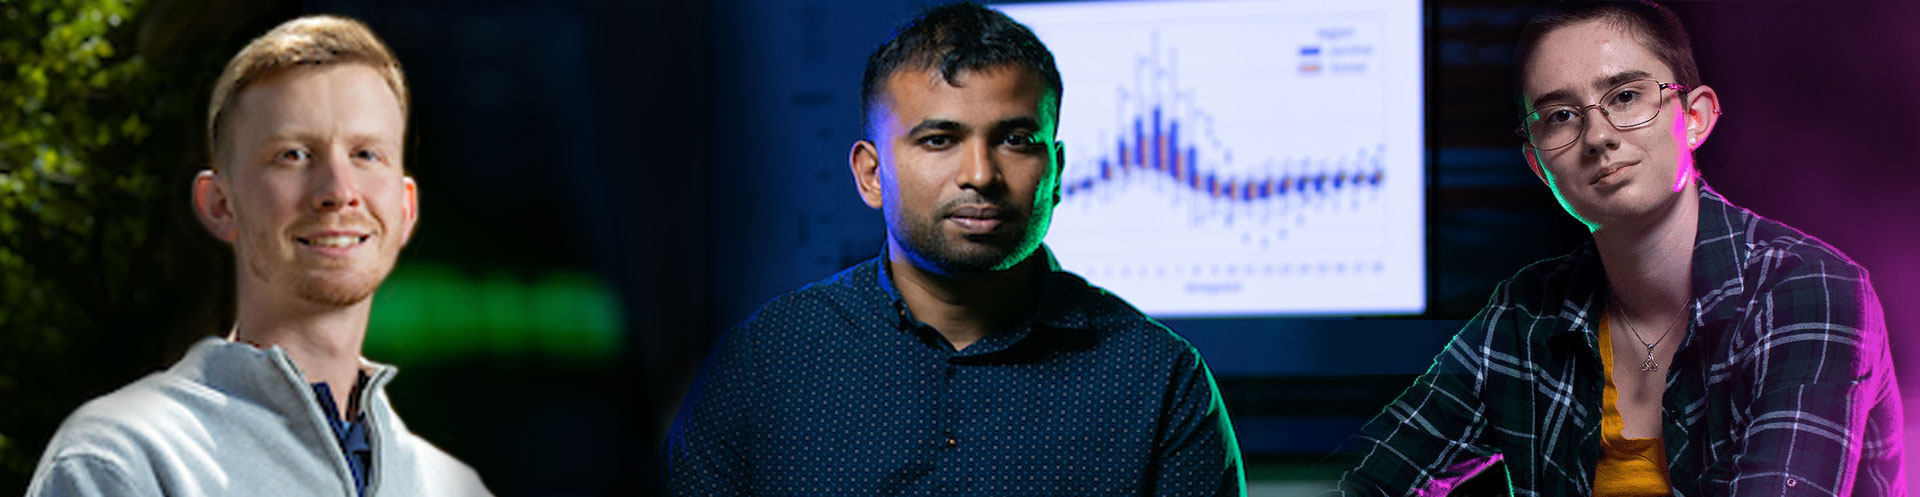 Kennesaw State's School of Data Science and Analytics offers opportunity for all levels of students